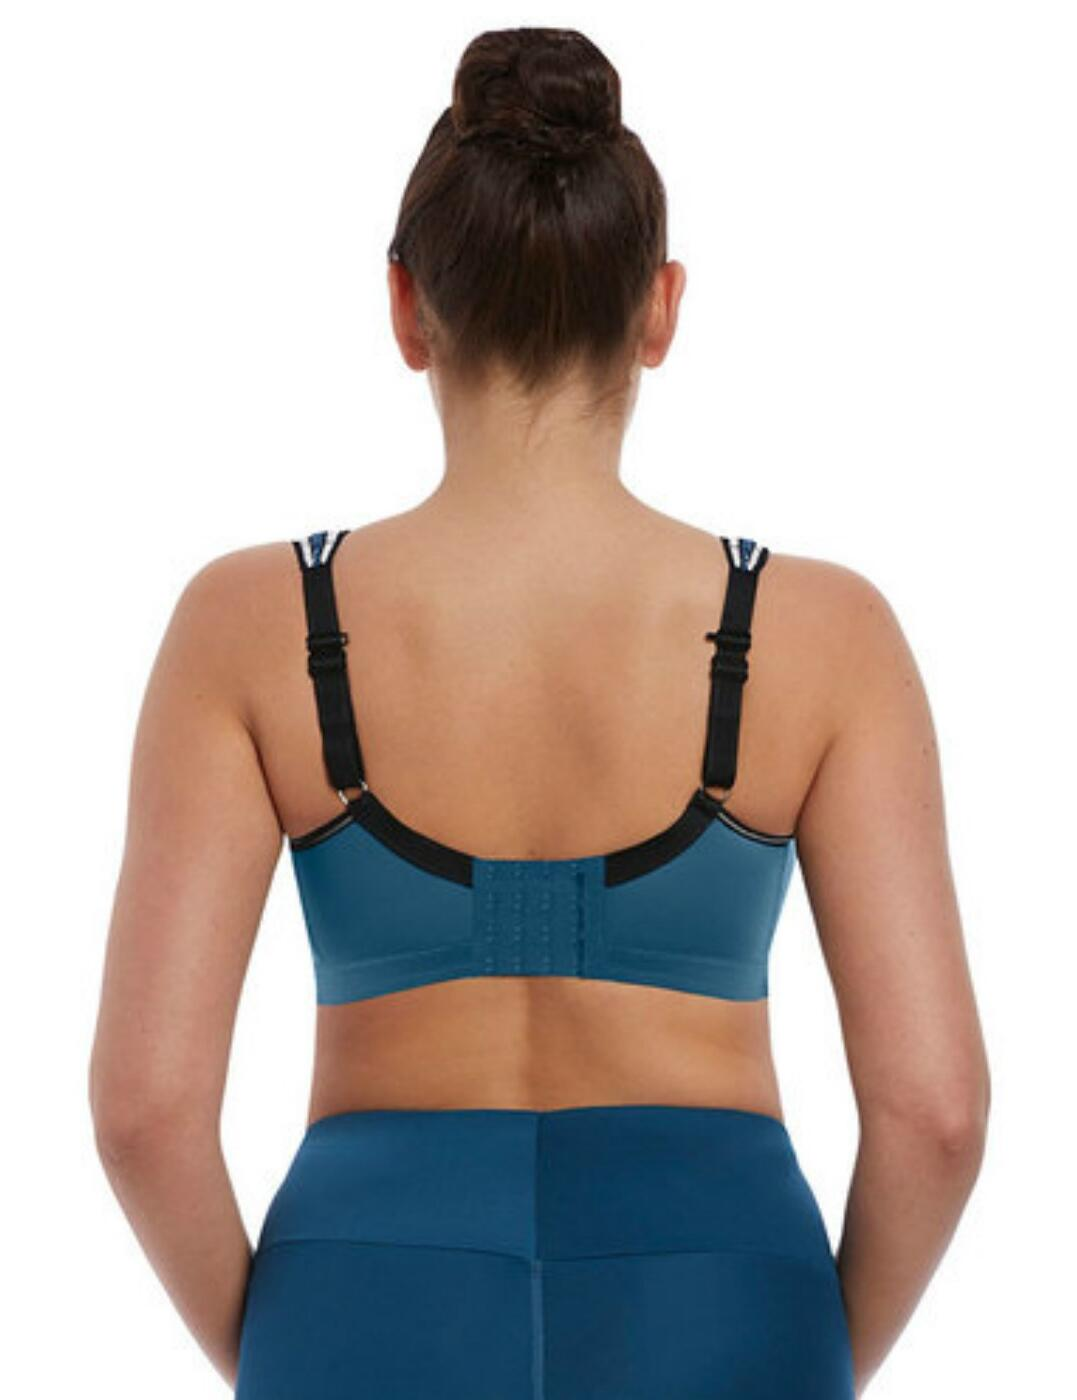 Freya-Active-Sports-Bra-Sonic-Underwired-Moulded-4892-Supportive-High-Impact thumbnail 13